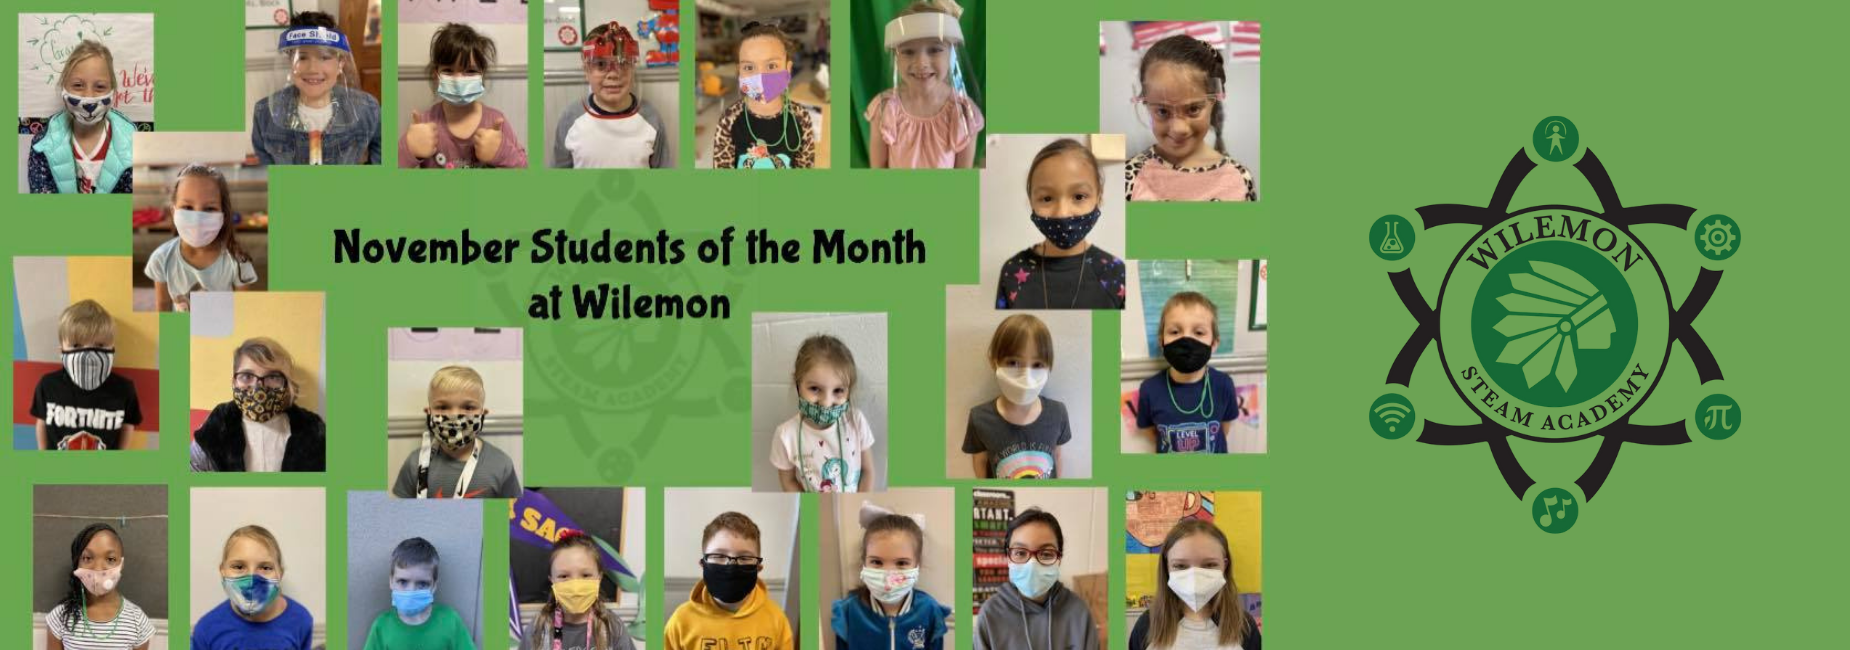 collage of young students wearing facemasks that are the students of the month